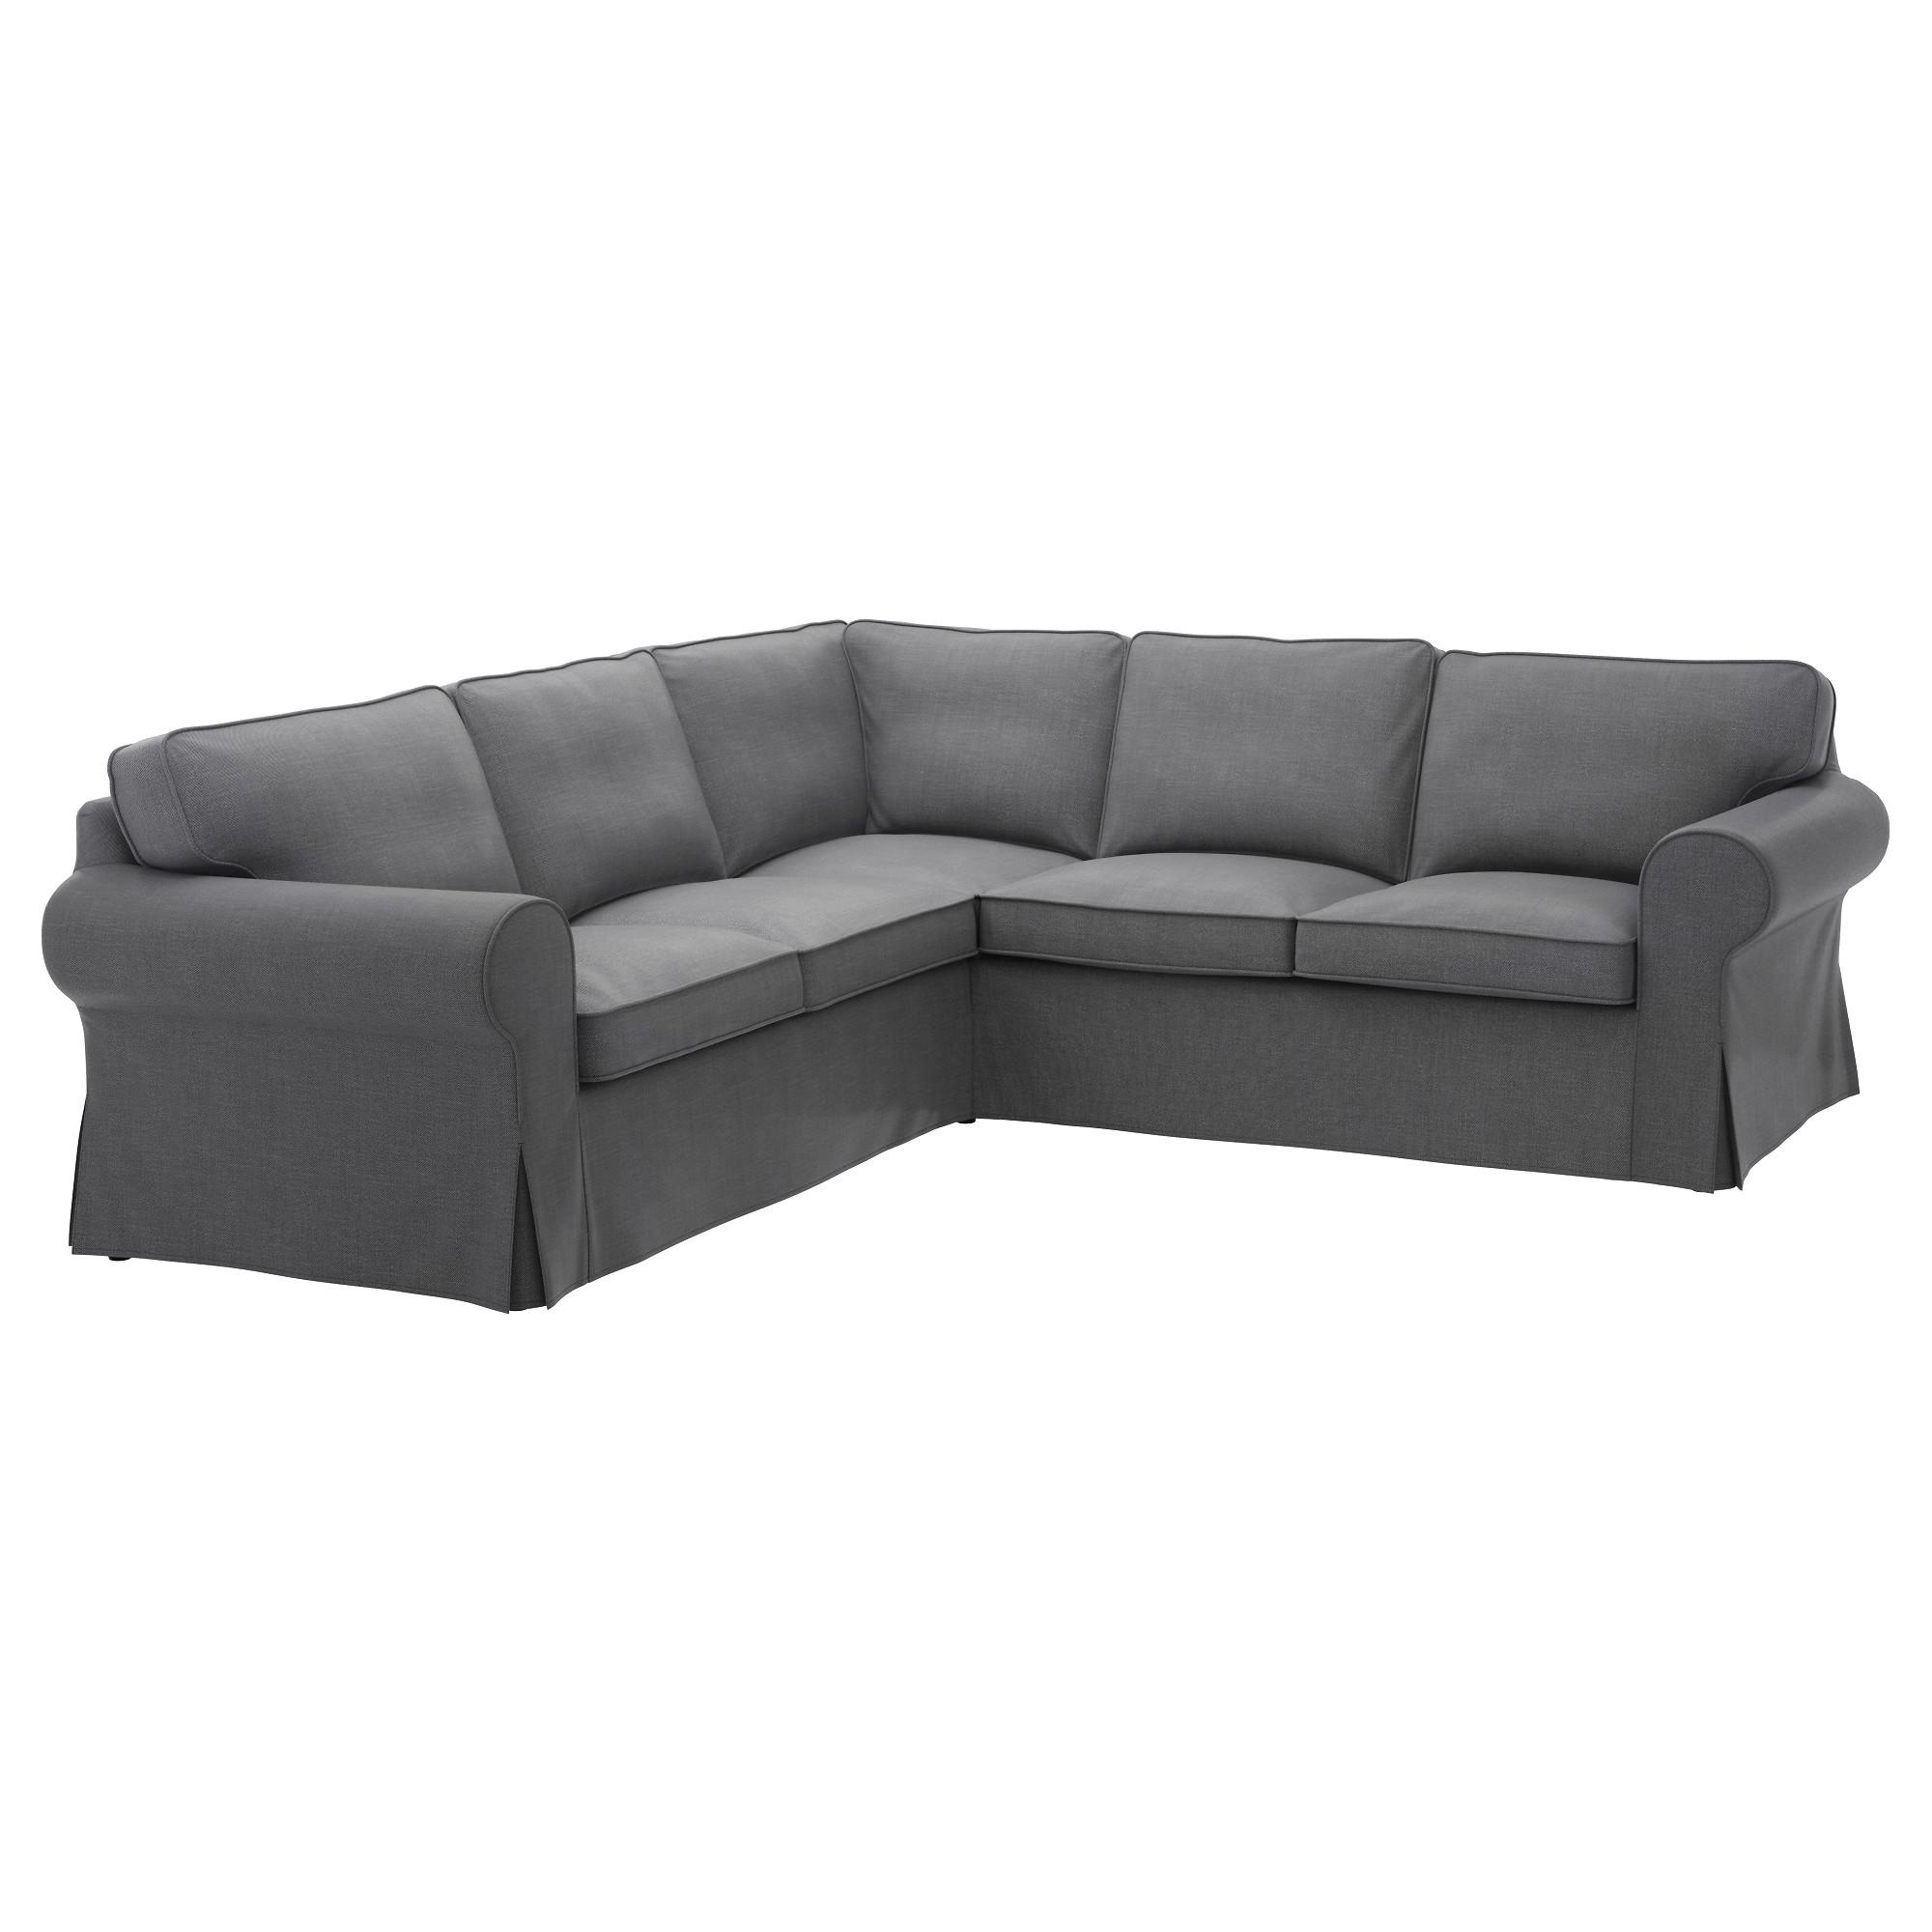 Fabric Sofas – Modern & Contemporary – Ikea Inside Fabric Sofas (Image 6 of 20)